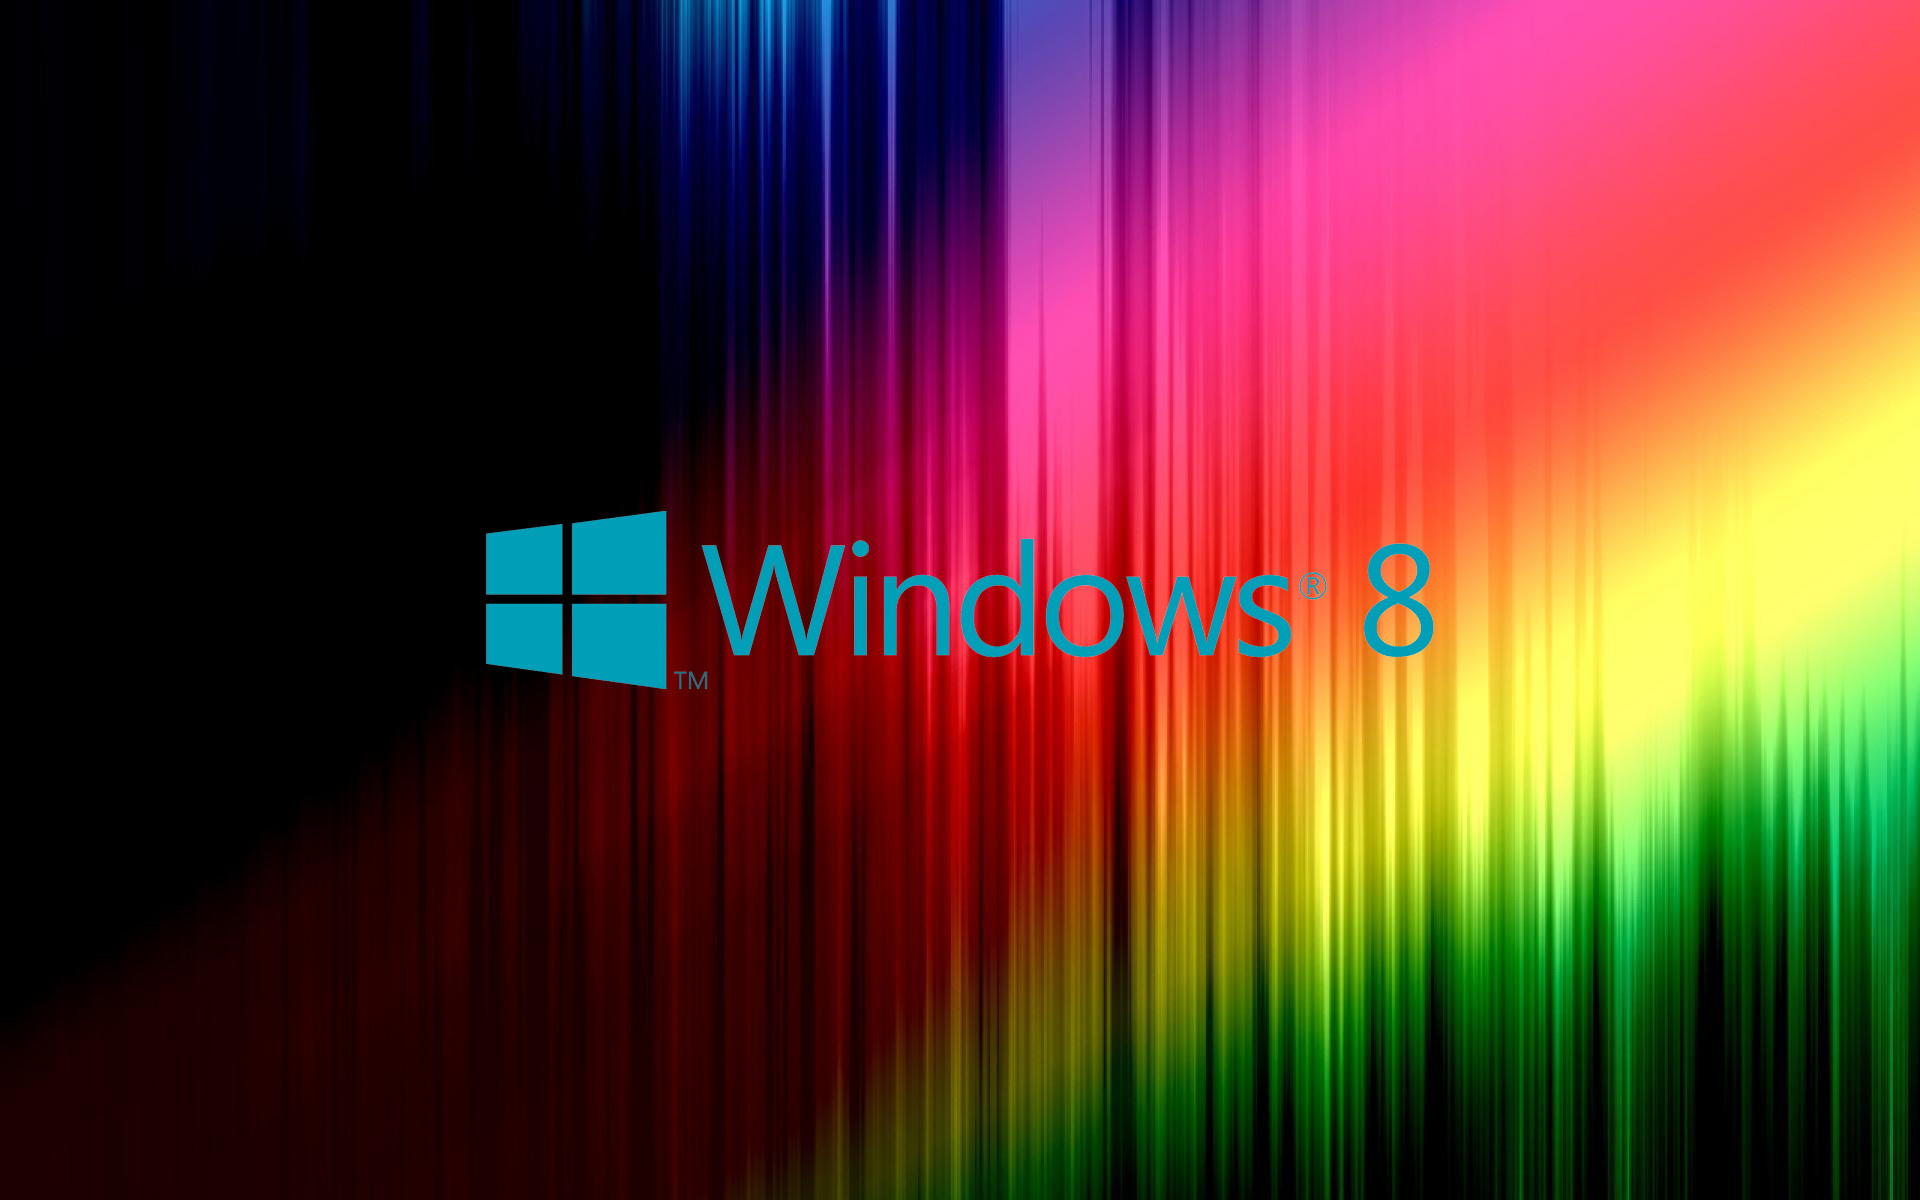 Wallpapers windows 8 for Windows 8 bureaublad